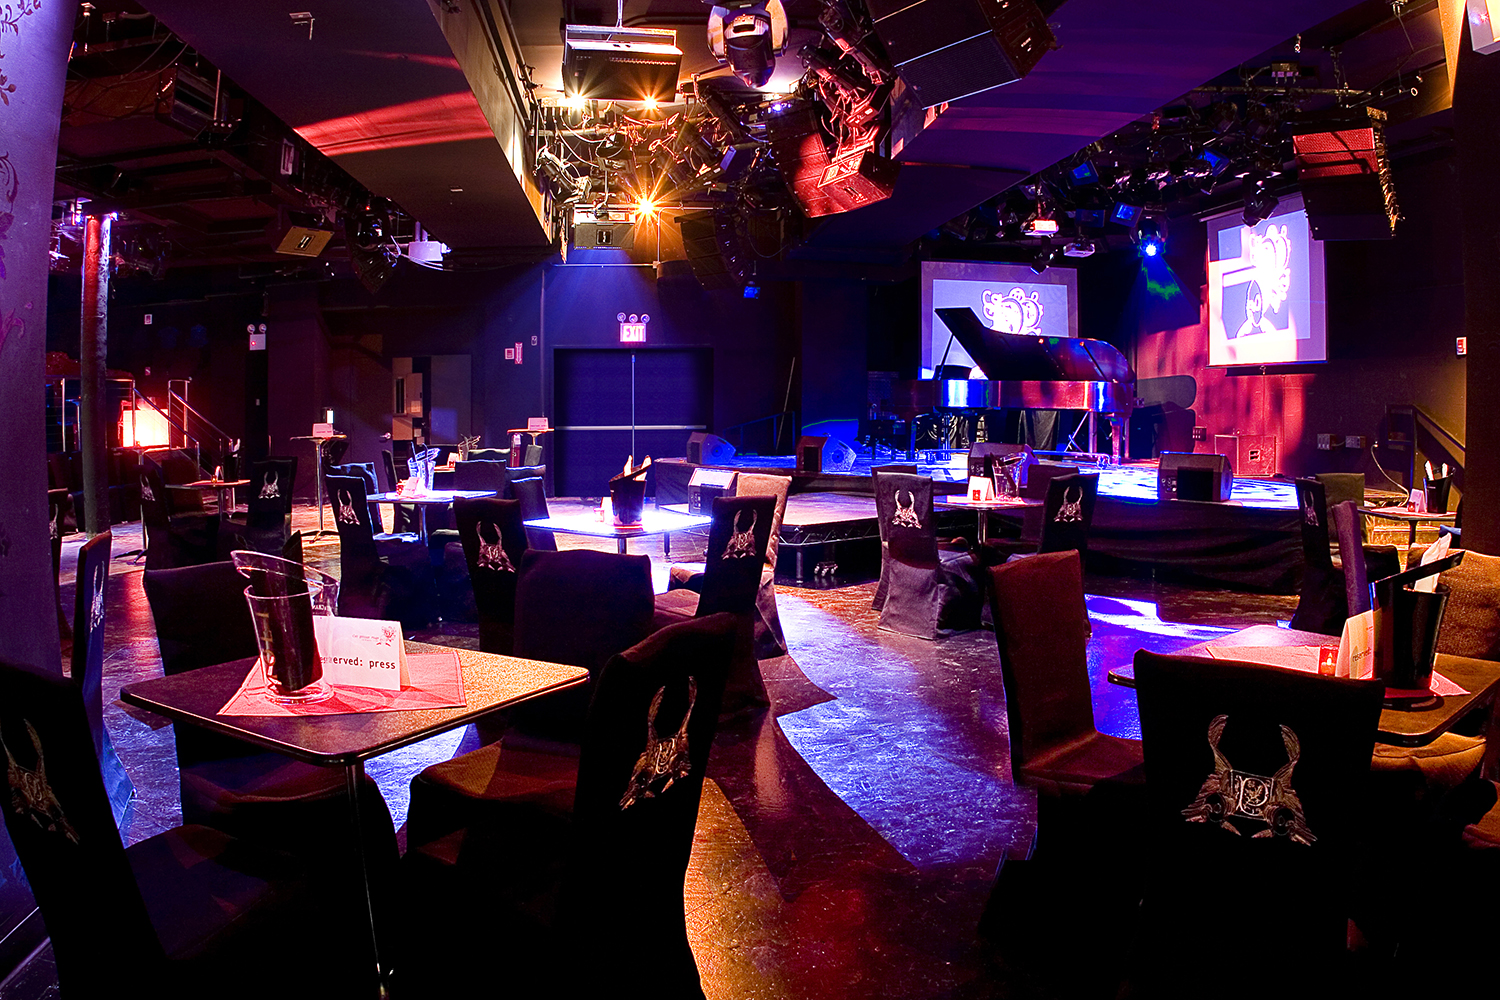 All about jazz club profile le poisson rouge wsdg for Poisson rouge